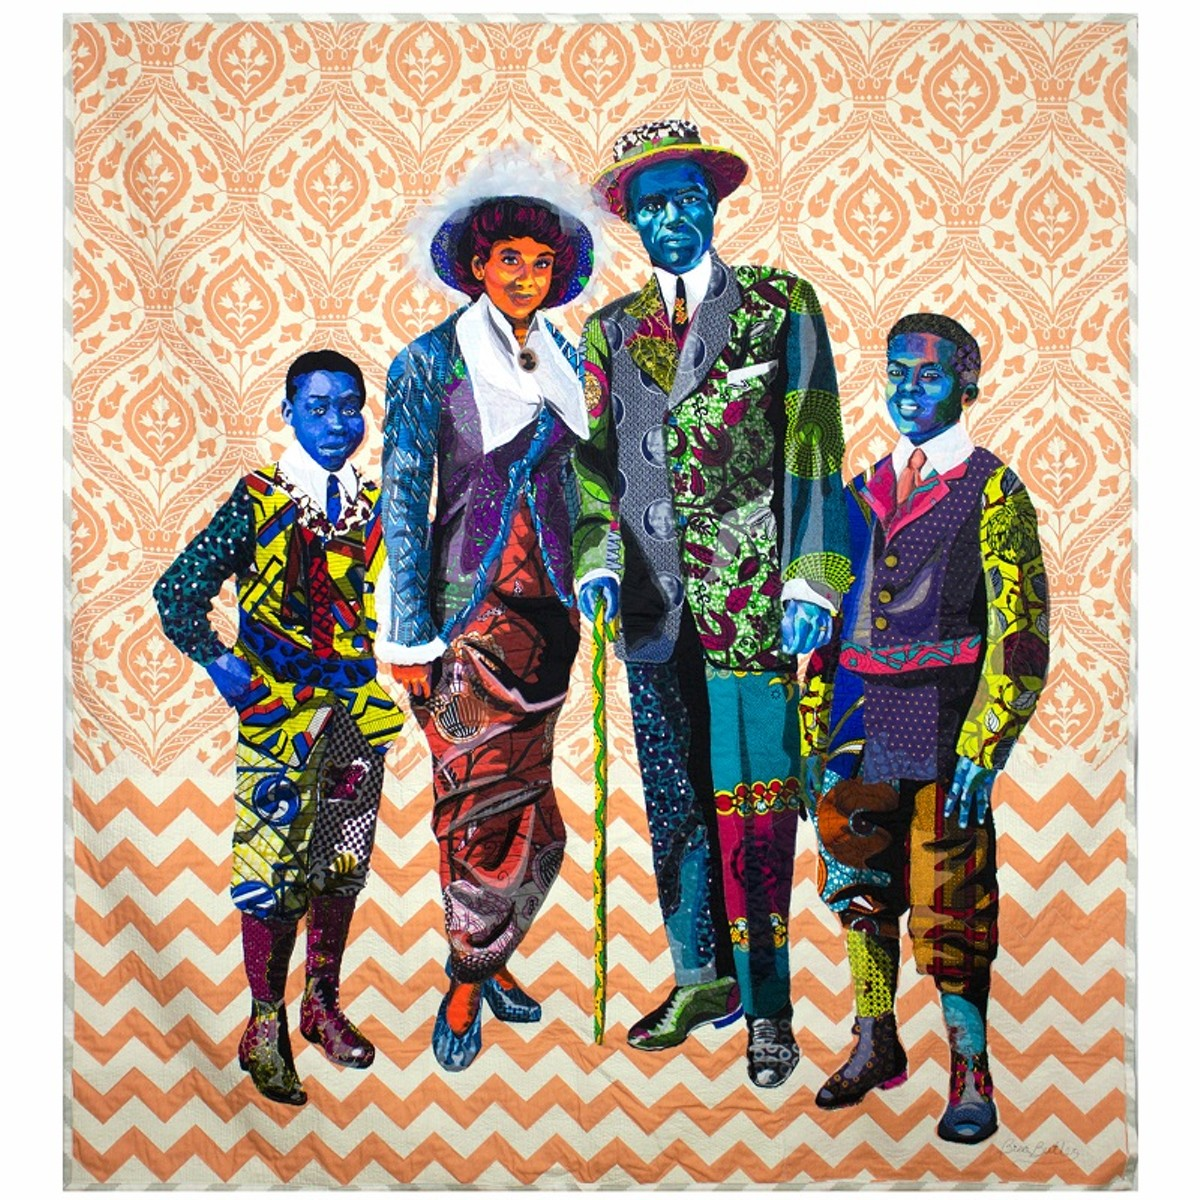 Bisa Butler. Black Star Family, first class tickets to Liberia (2018). 85 x 79 inches. Cotton, silk and denim. Courtesy of artist and Claire Oliver Gallery